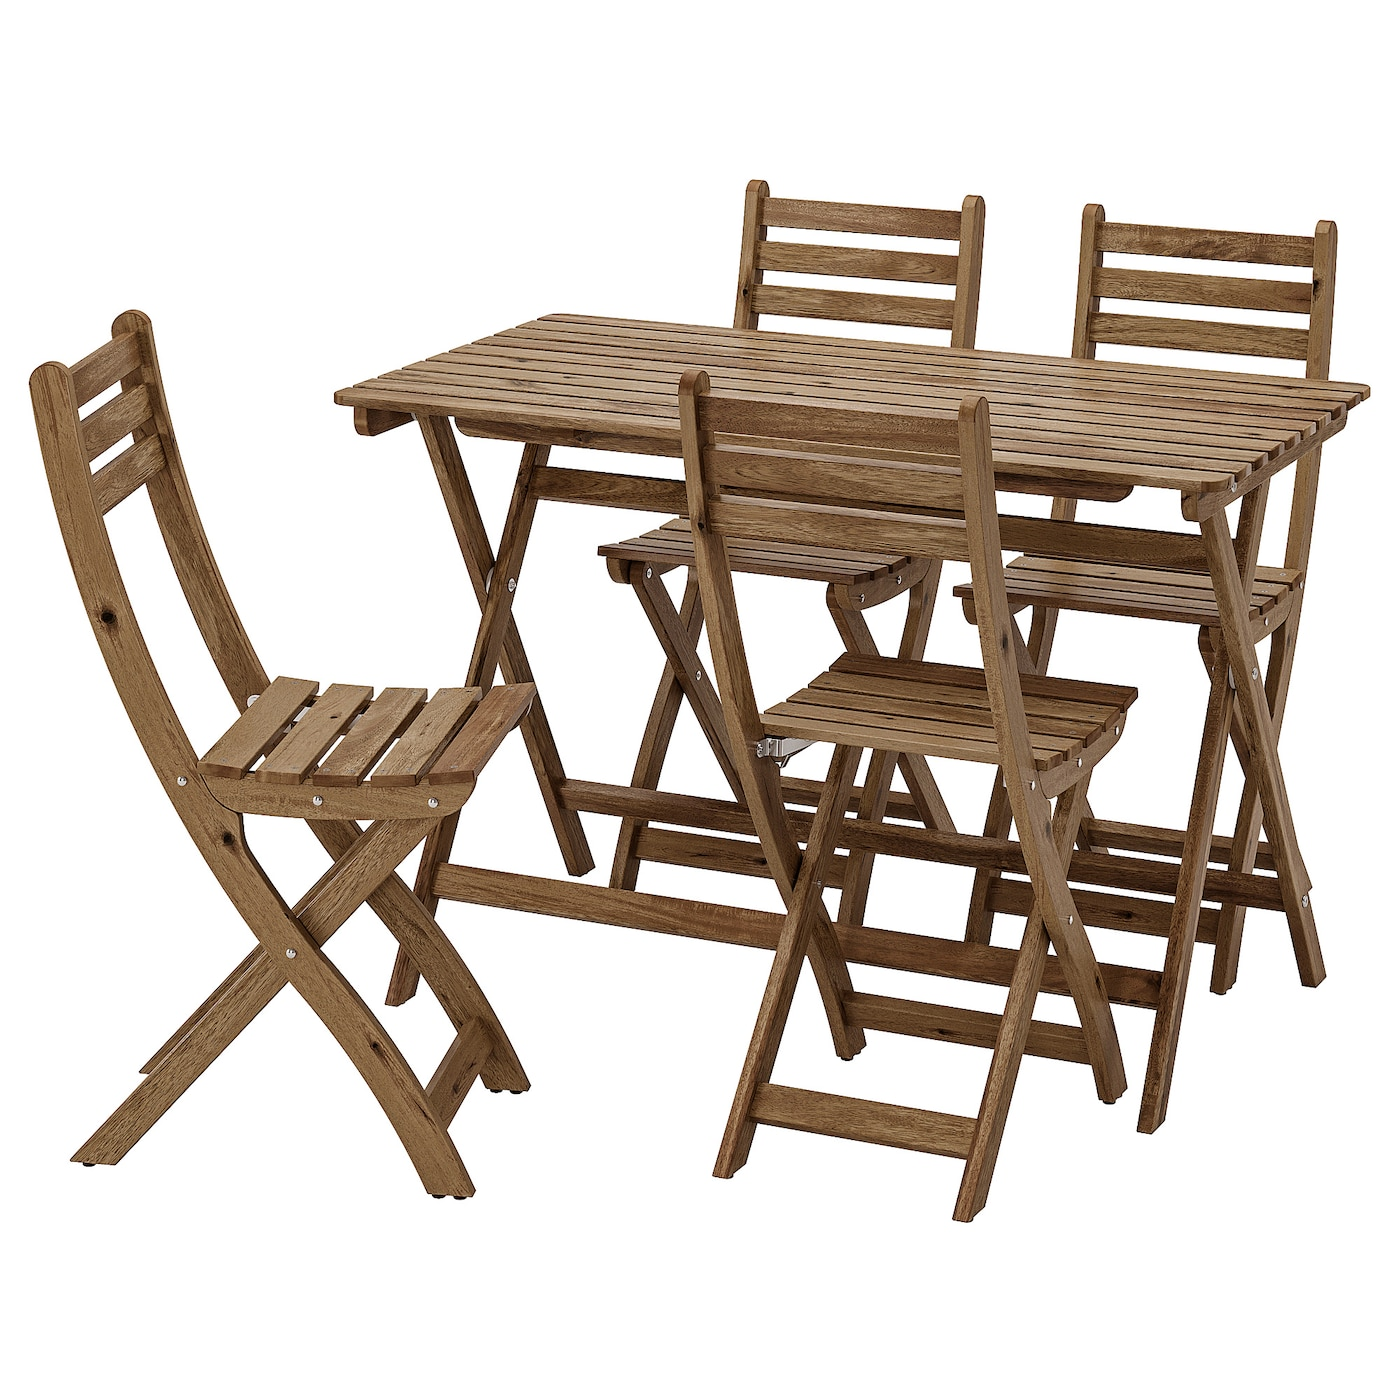 Askholmen Table 4 Chairs Outdoor Grey Brown Stained Ikea